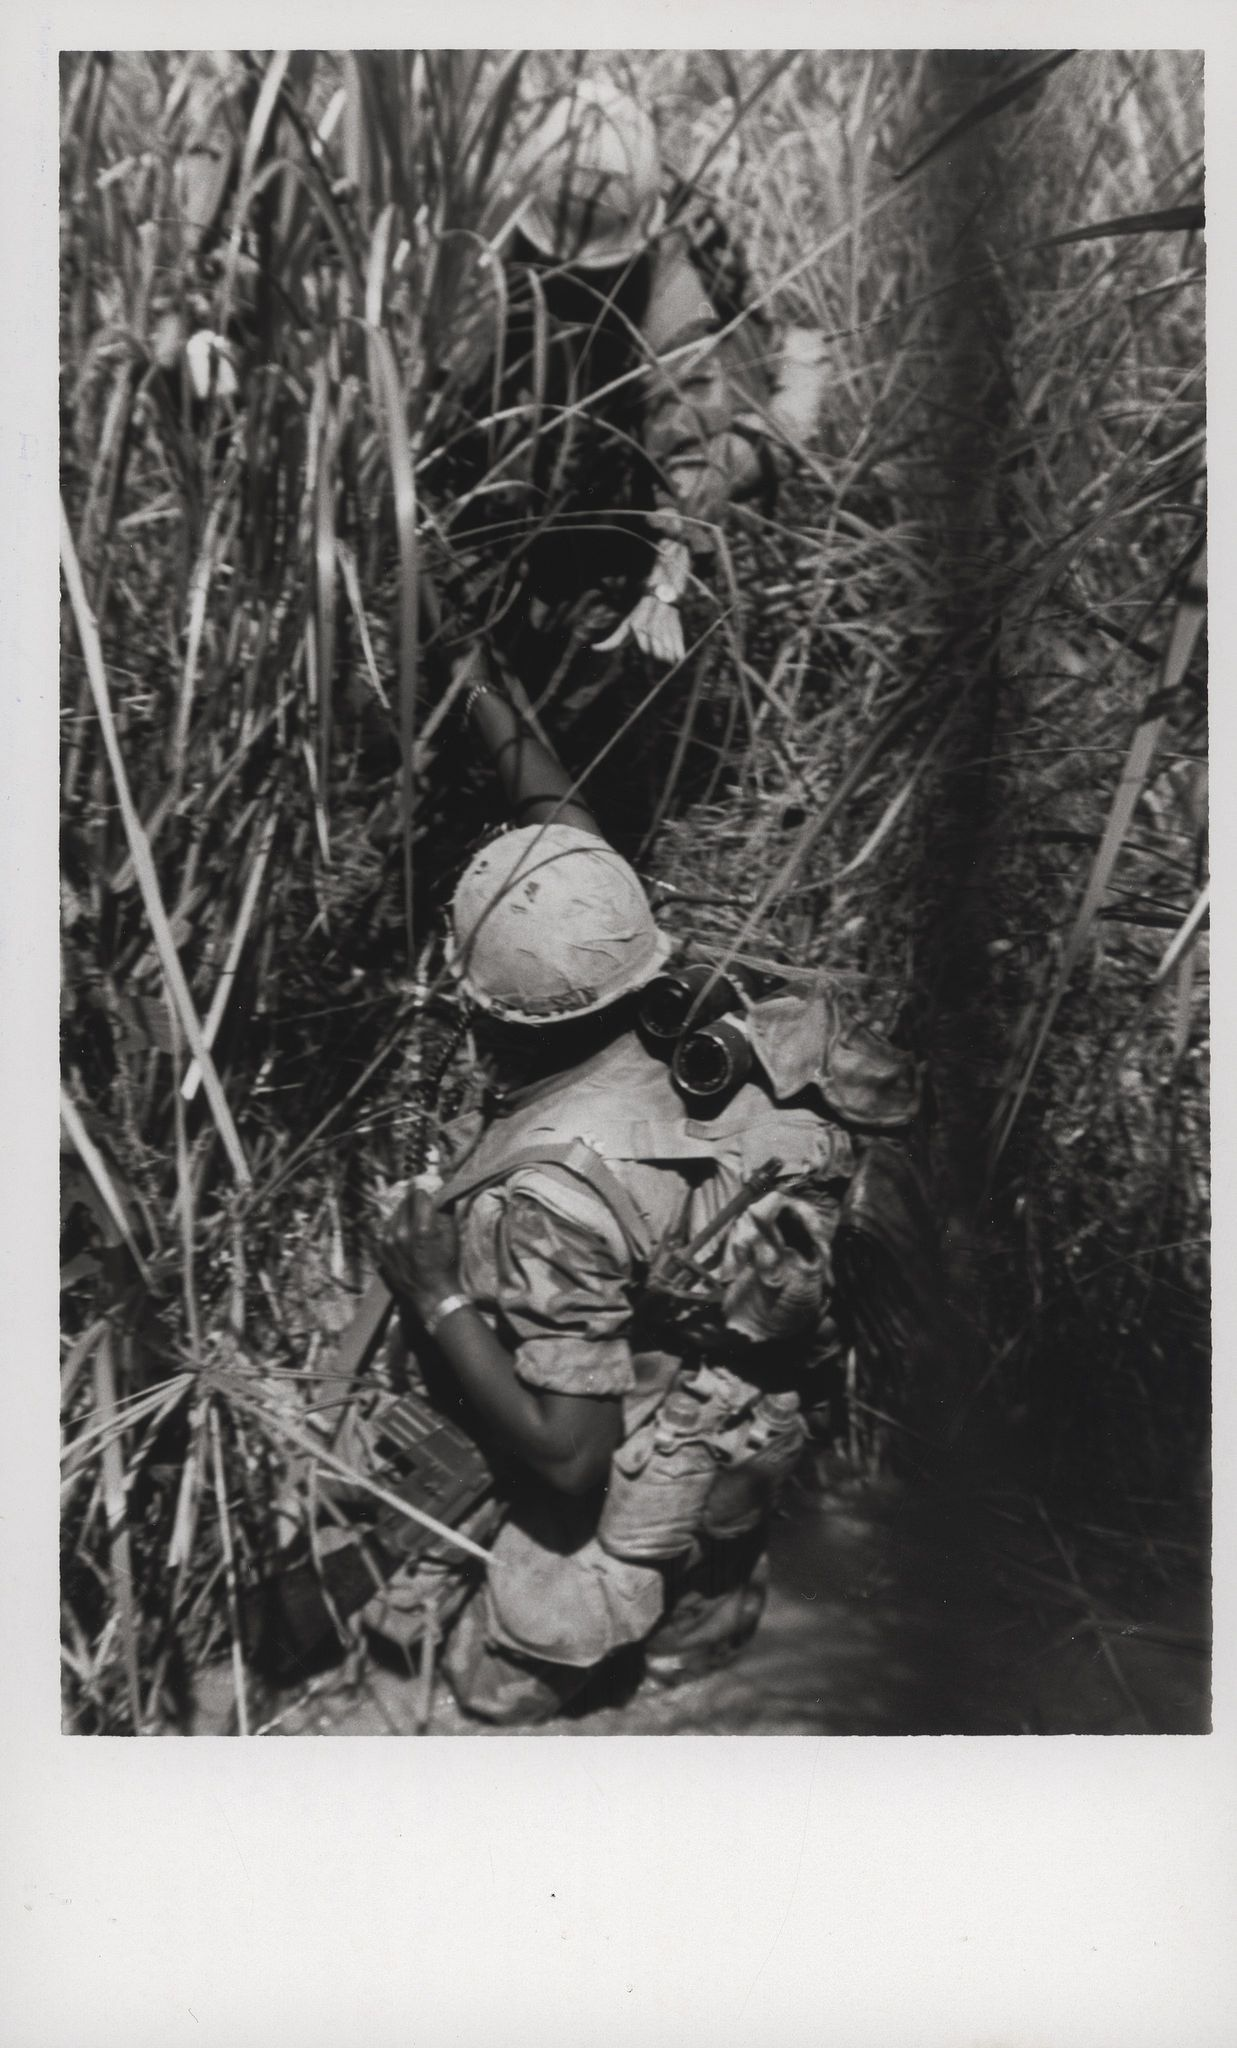 """Marine Lends a Helping Hand, 1969 """"Lending a Hand: An outstretched hand from a Marine buddy helps lift this Leatherneck from a deep stream south of the Demilitarized Zone. The 9th Marine Regiment Leathernecks were participating in Operation Dawson River, west of Khe Sanh in the northernmost province of South Vietnam (official USMC photo by Lance Corporal Don Barr)."""" From the Jonathan Abel Collection (COLL/3611), Marine Corps Archives & Special Collections. OFFICIAL USMC PHOTOGRAPH"""